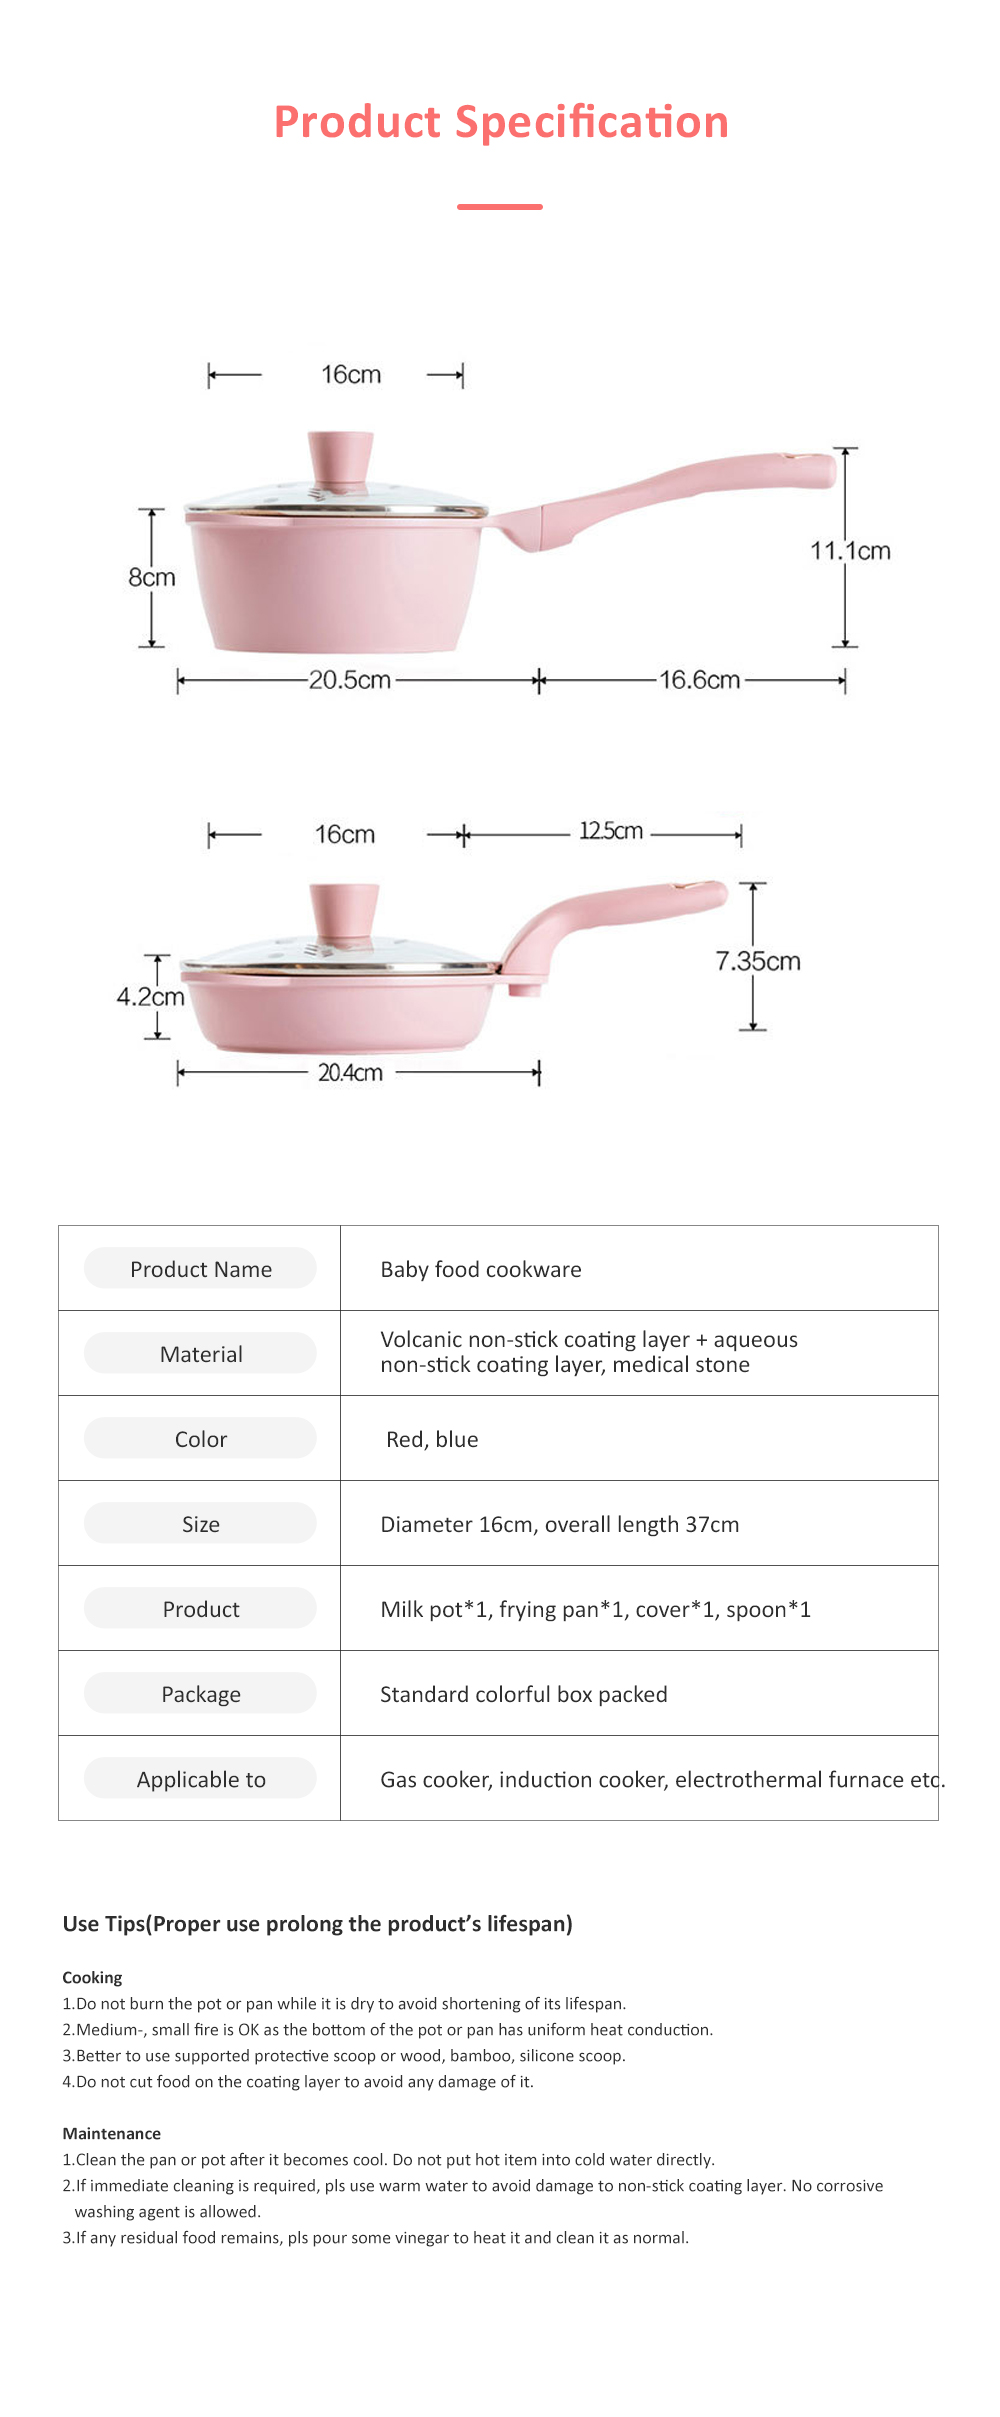 Didinika Cookware for Baby Food Making Multifunctional Non-stick Medical Stone Pot Infant Milk Pan Korean Style Medical Stone Pot 9